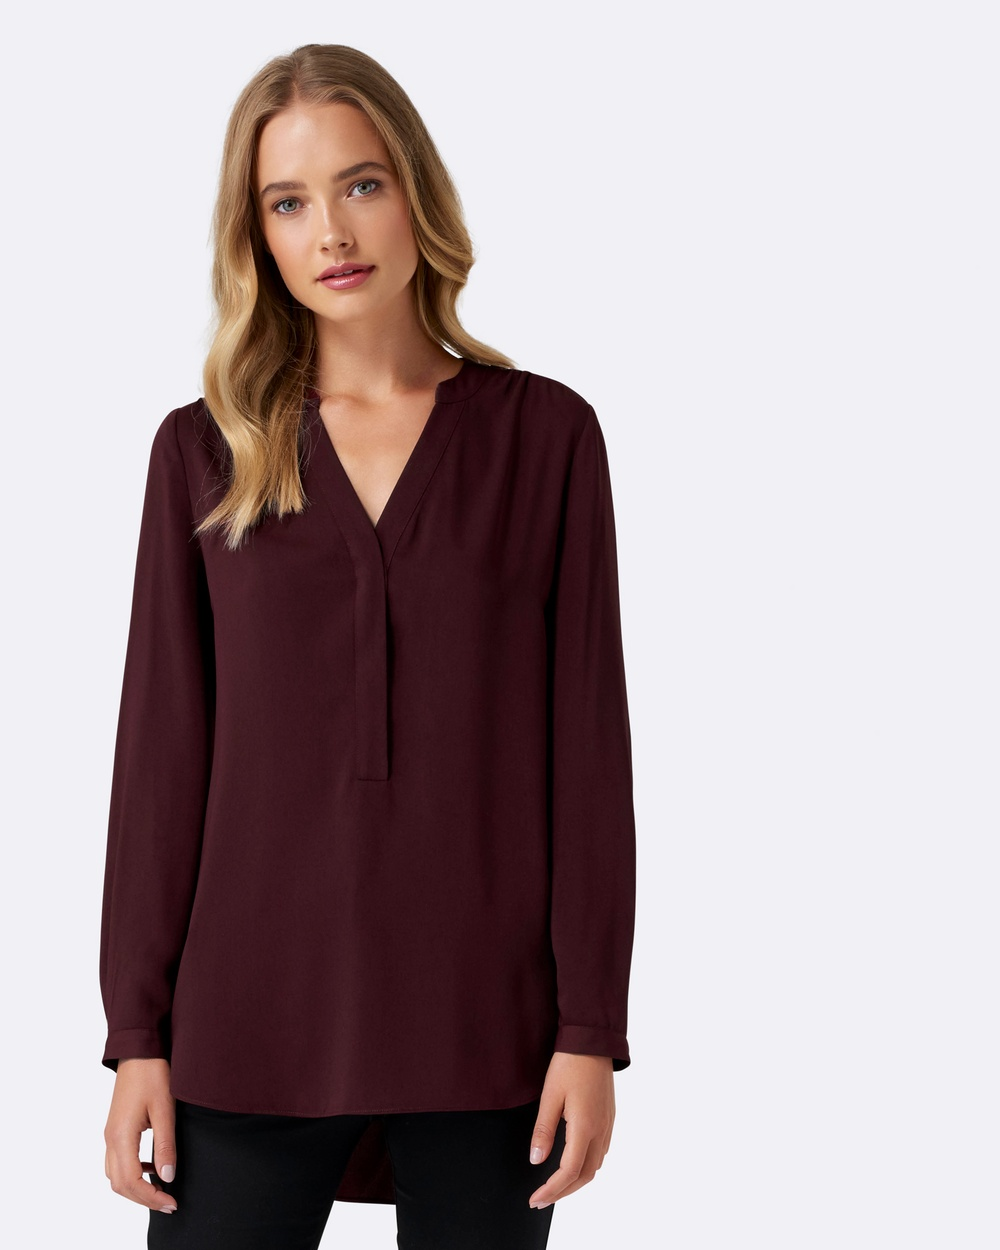 Forever New Heidi Gathered Shoulder Tunic Tops Cerise Plum Heidi Gathered Shoulder Tunic